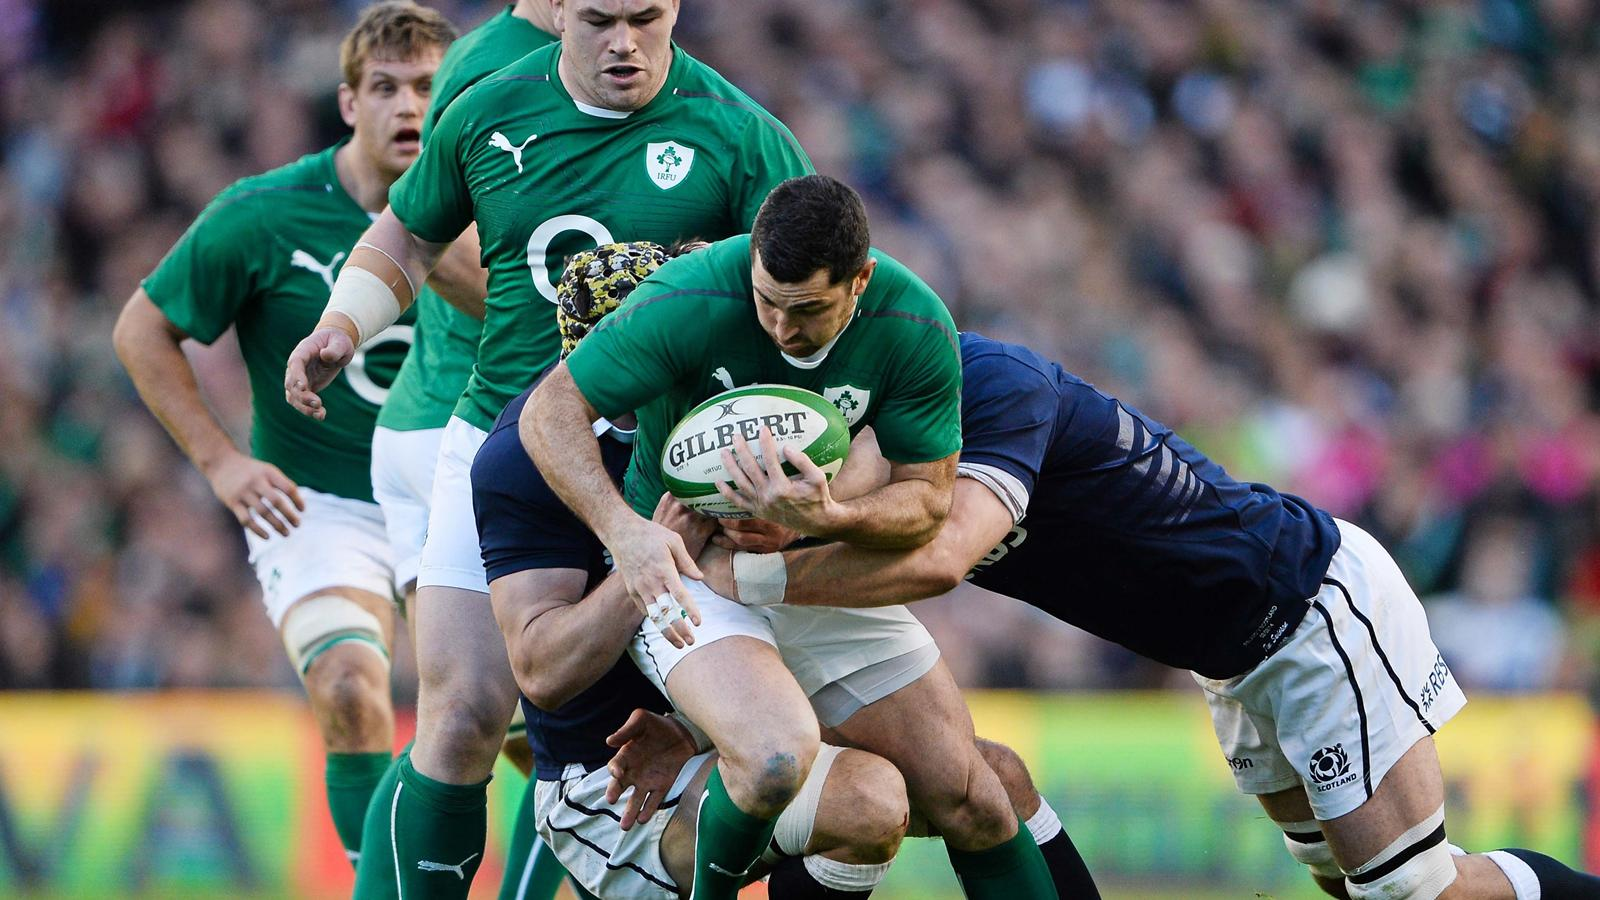 Tournoi des 6 nations 2014 irlande ecosse 28 6 l 39 irlande sa juste main 6 nations 2014 - Coupe des 6 nations rugby ...